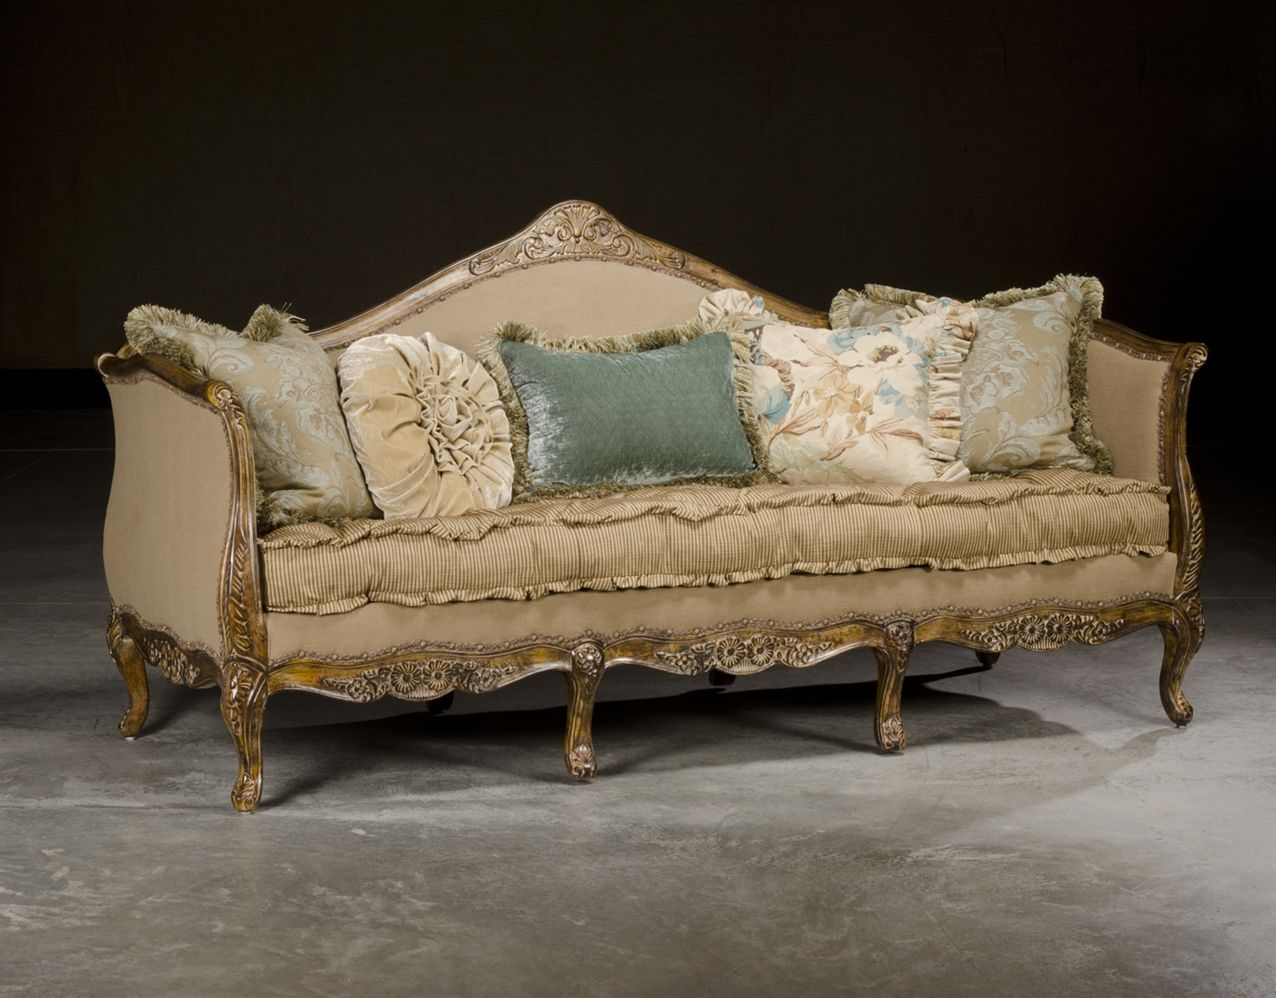 Rustic French Country Furniture | French Country Rustic ...